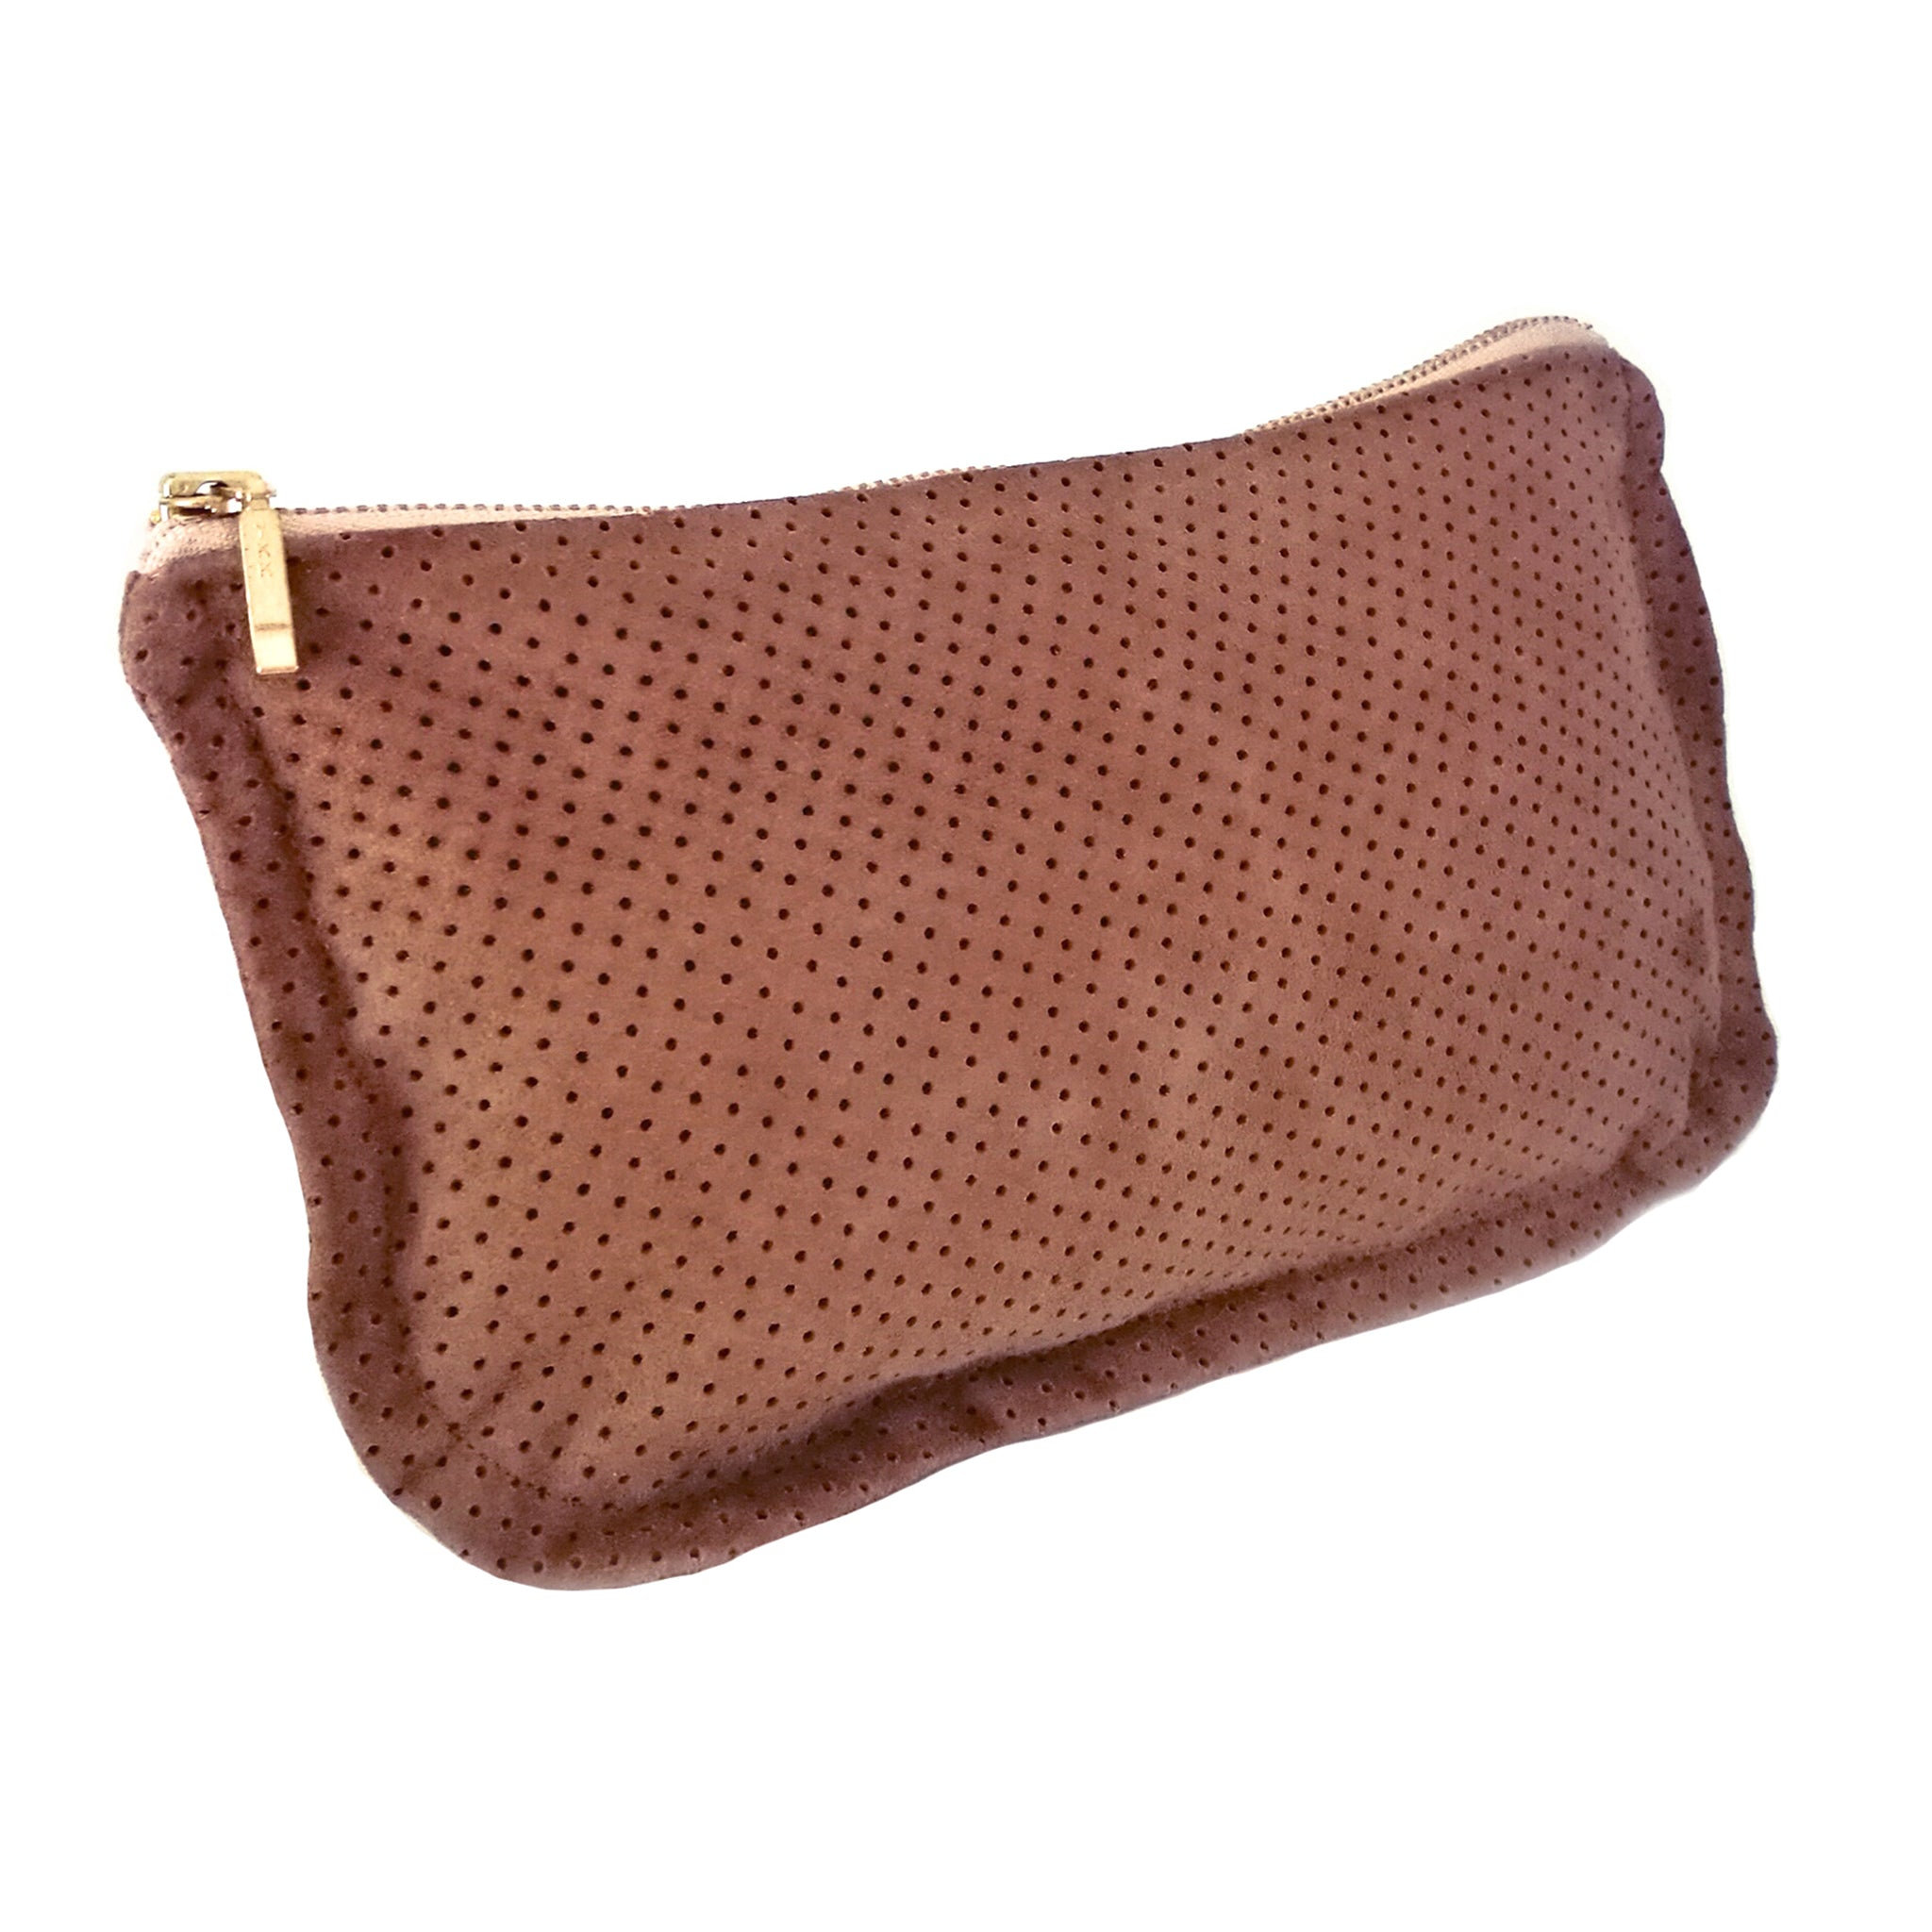 Common Texture soft handcrafted purse, clutch, pouch or evening bag made from upcycled genuine suede leather in chocolate brown teak with gold colored zip.